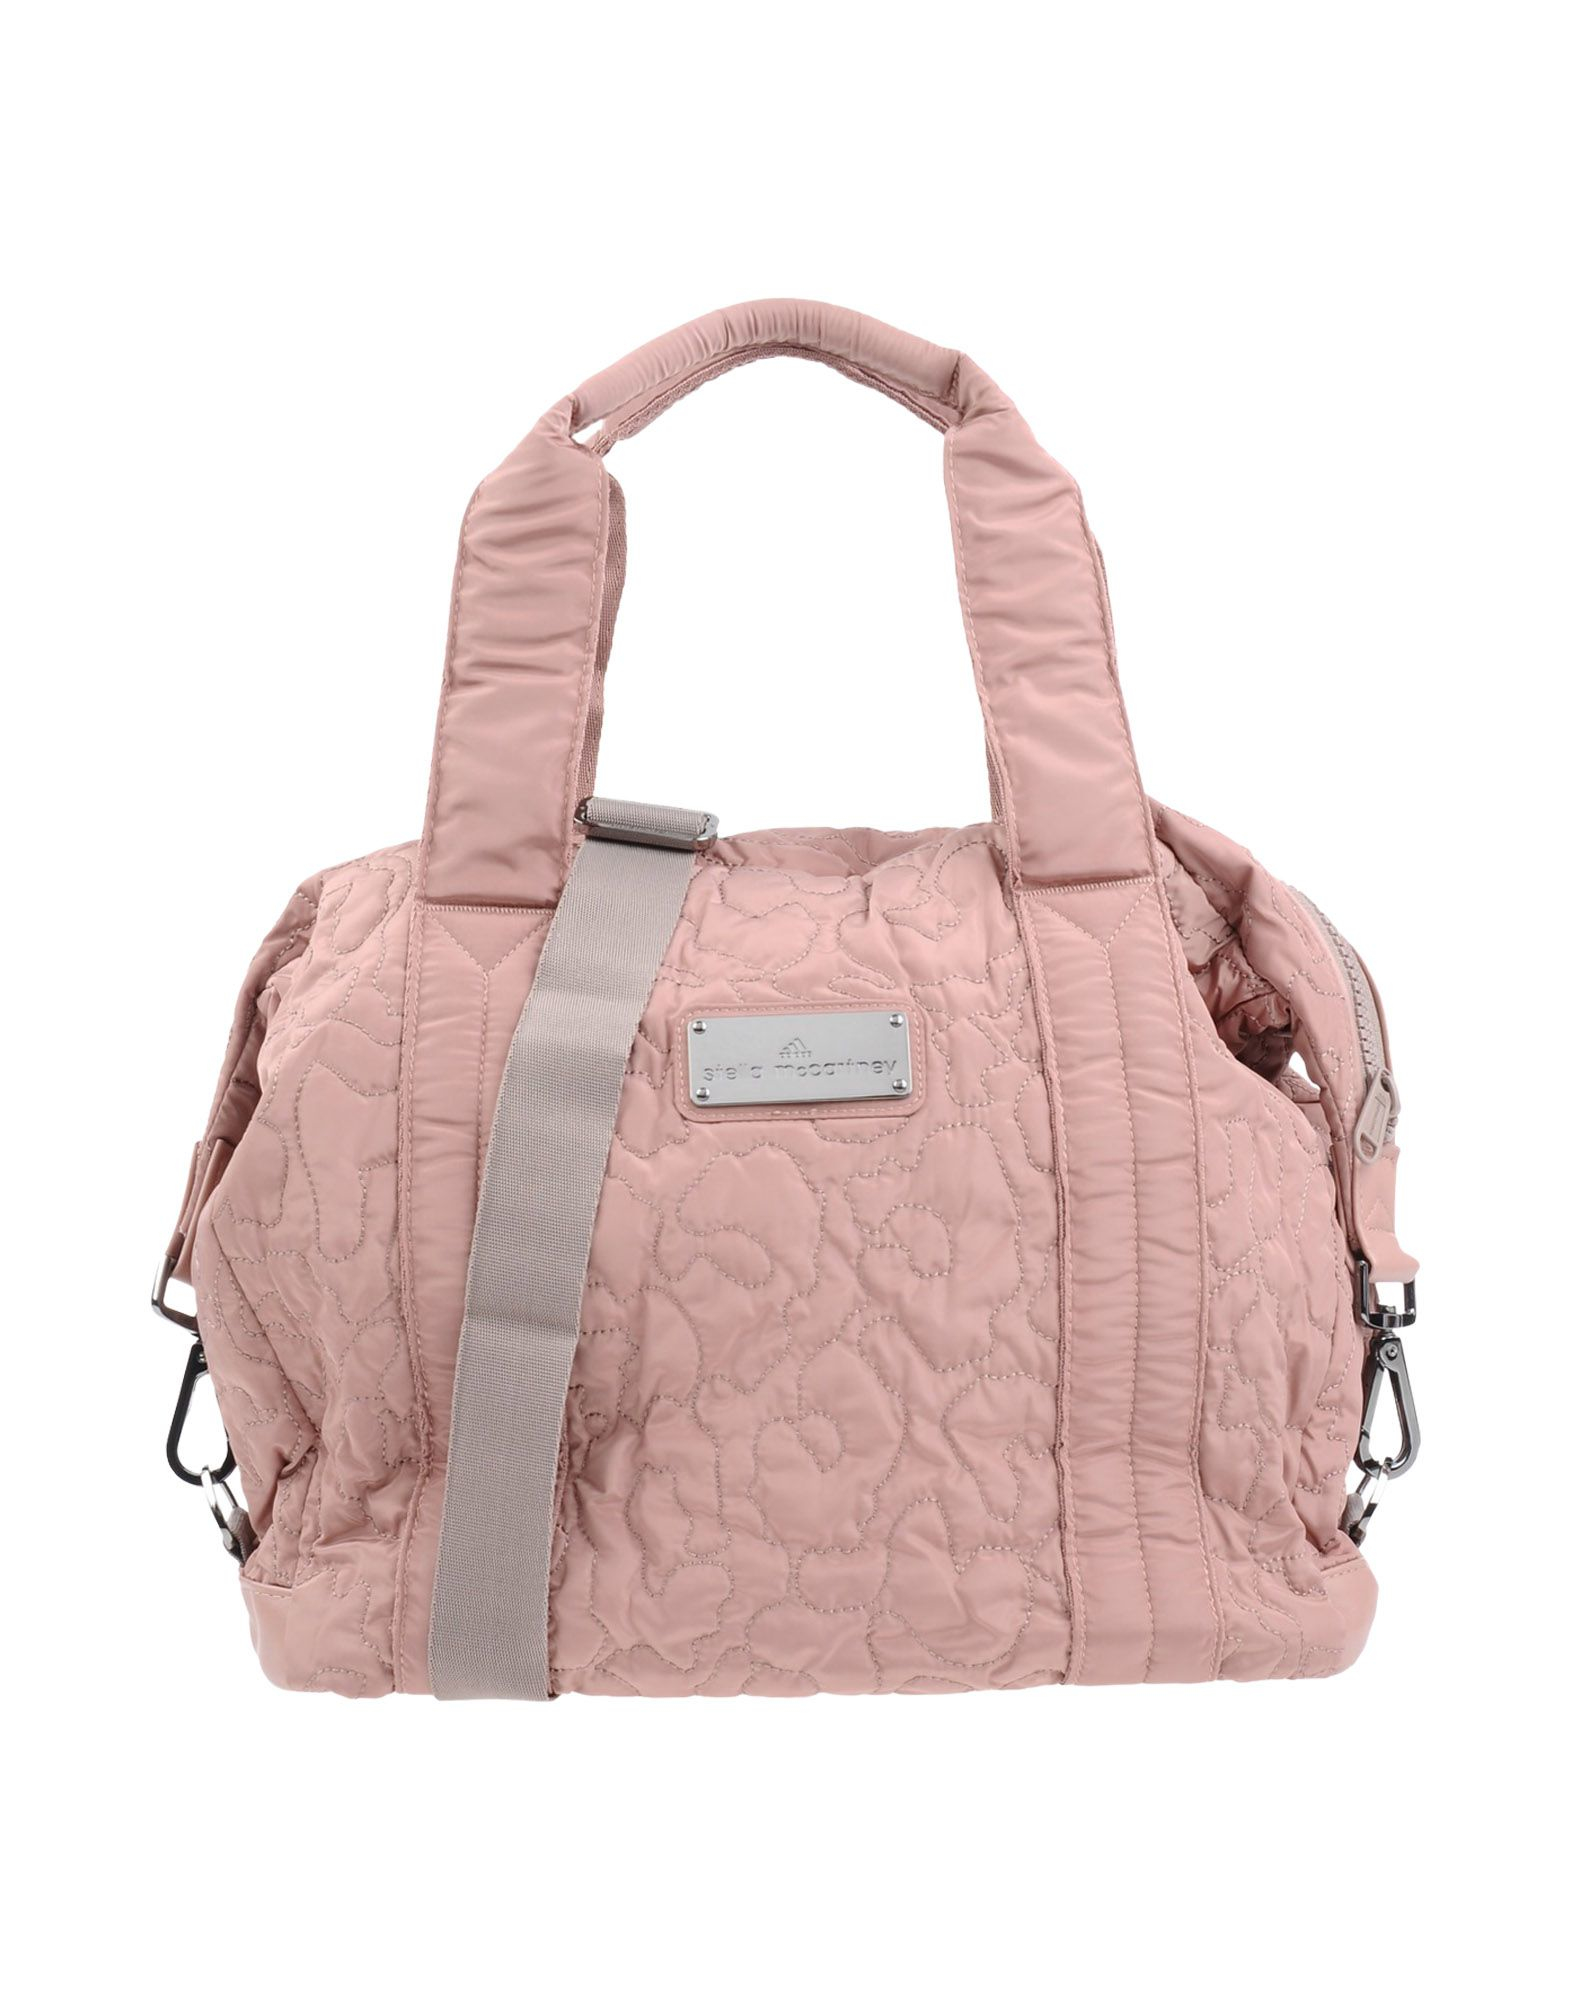 Lyst - adidas By Stella McCartney Medium Quilted Gym Bag in Pink f2a9f261a2544